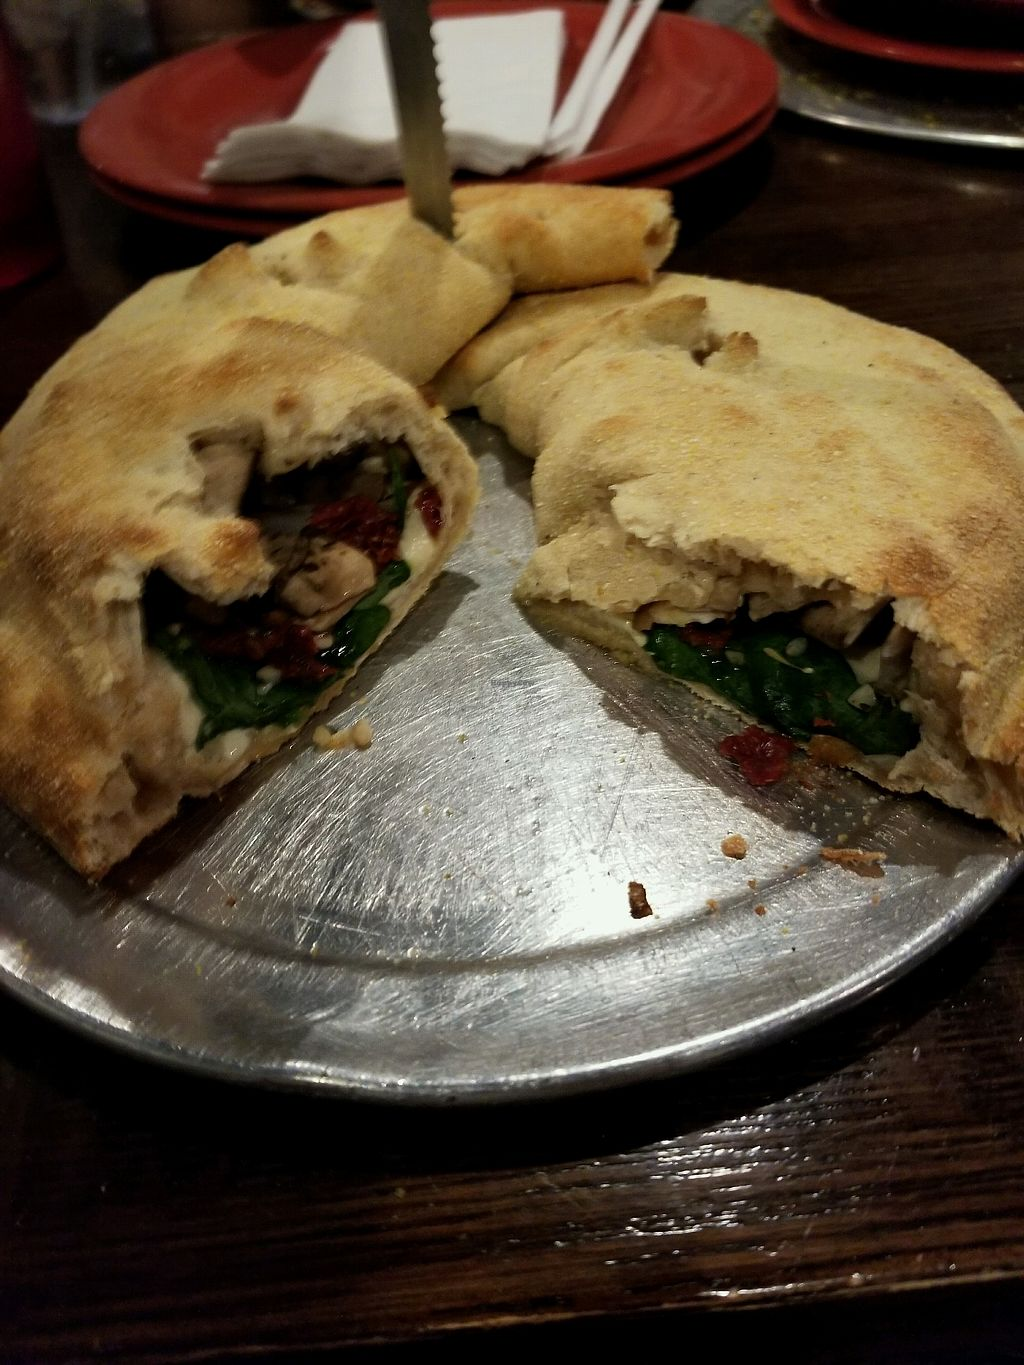 """Photo of Tomato Bar Pizza Bakery  by <a href=""""/members/profile/RachelSarahGeorge"""">RachelSarahGeorge</a> <br/>Hot Box calzone <br/> December 17, 2017  - <a href='/contact/abuse/image/65691/336531'>Report</a>"""